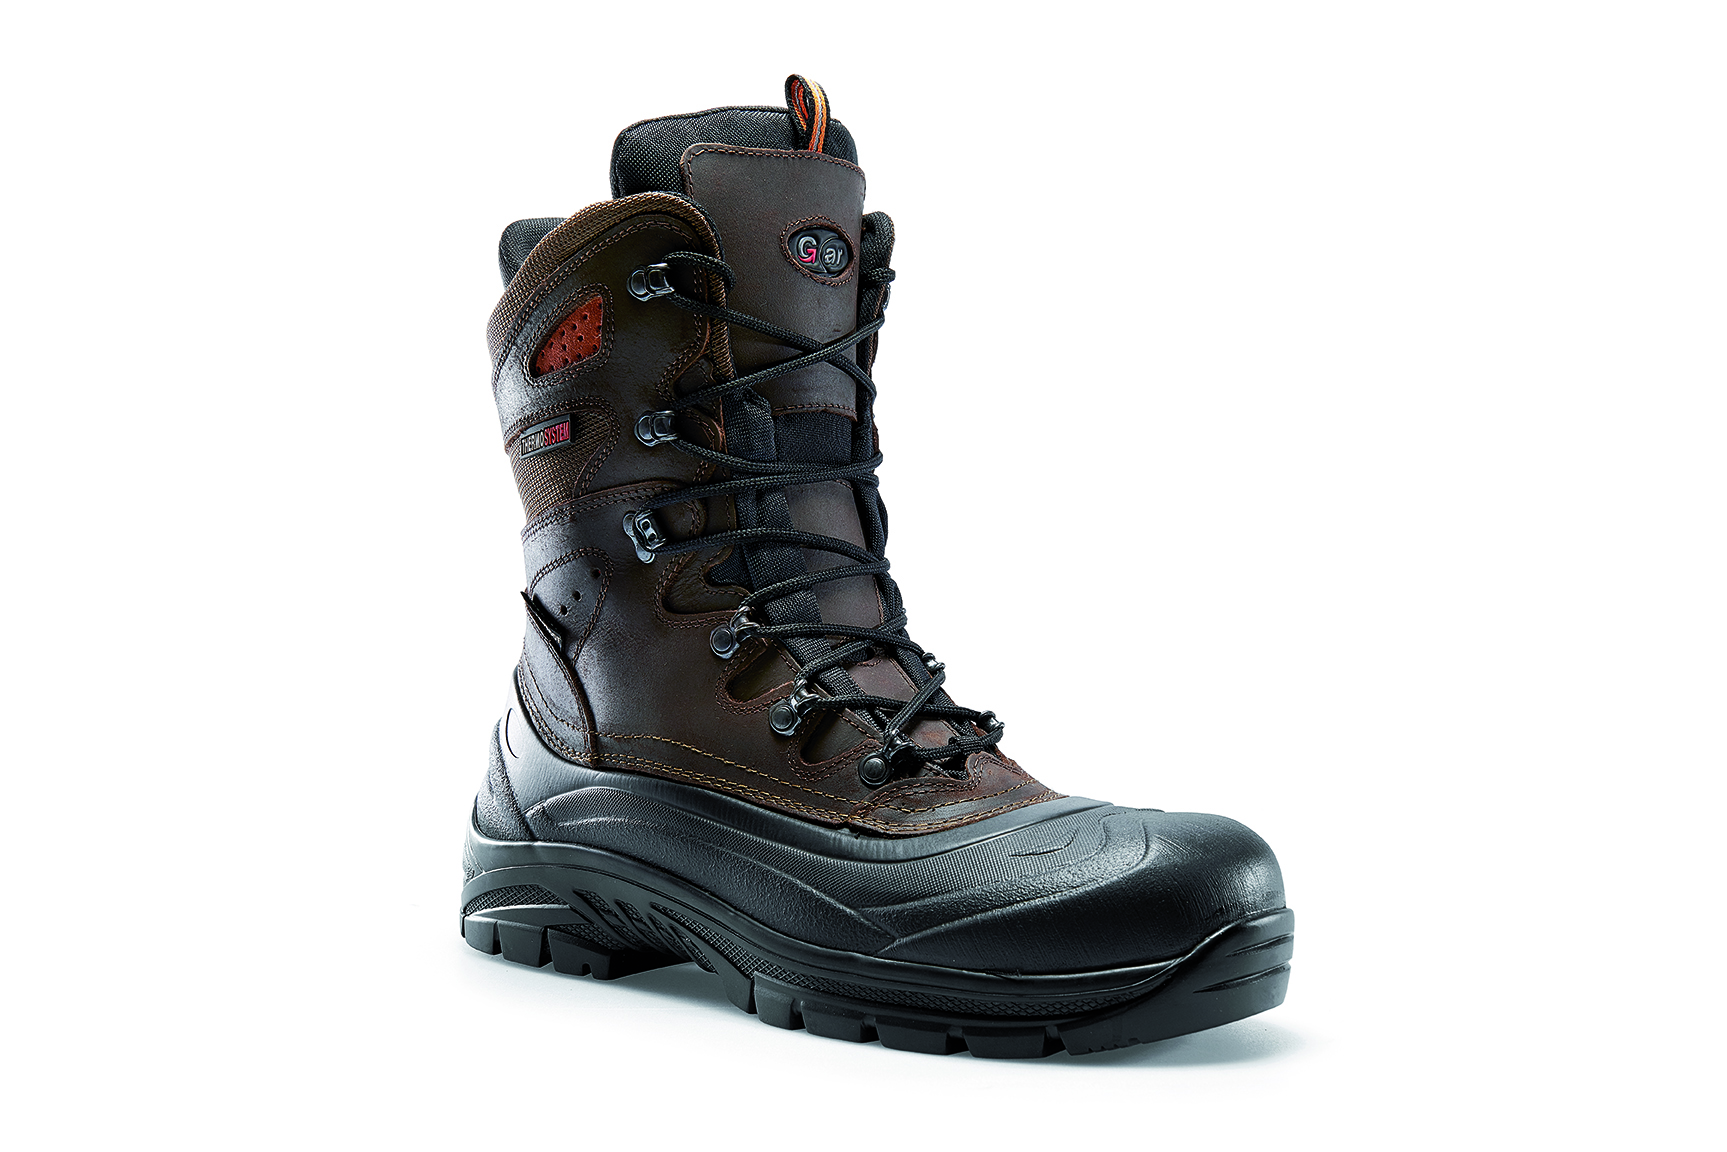 Alaska Wr S3 Heavy Duty Safety Work Boot From Garsport Of